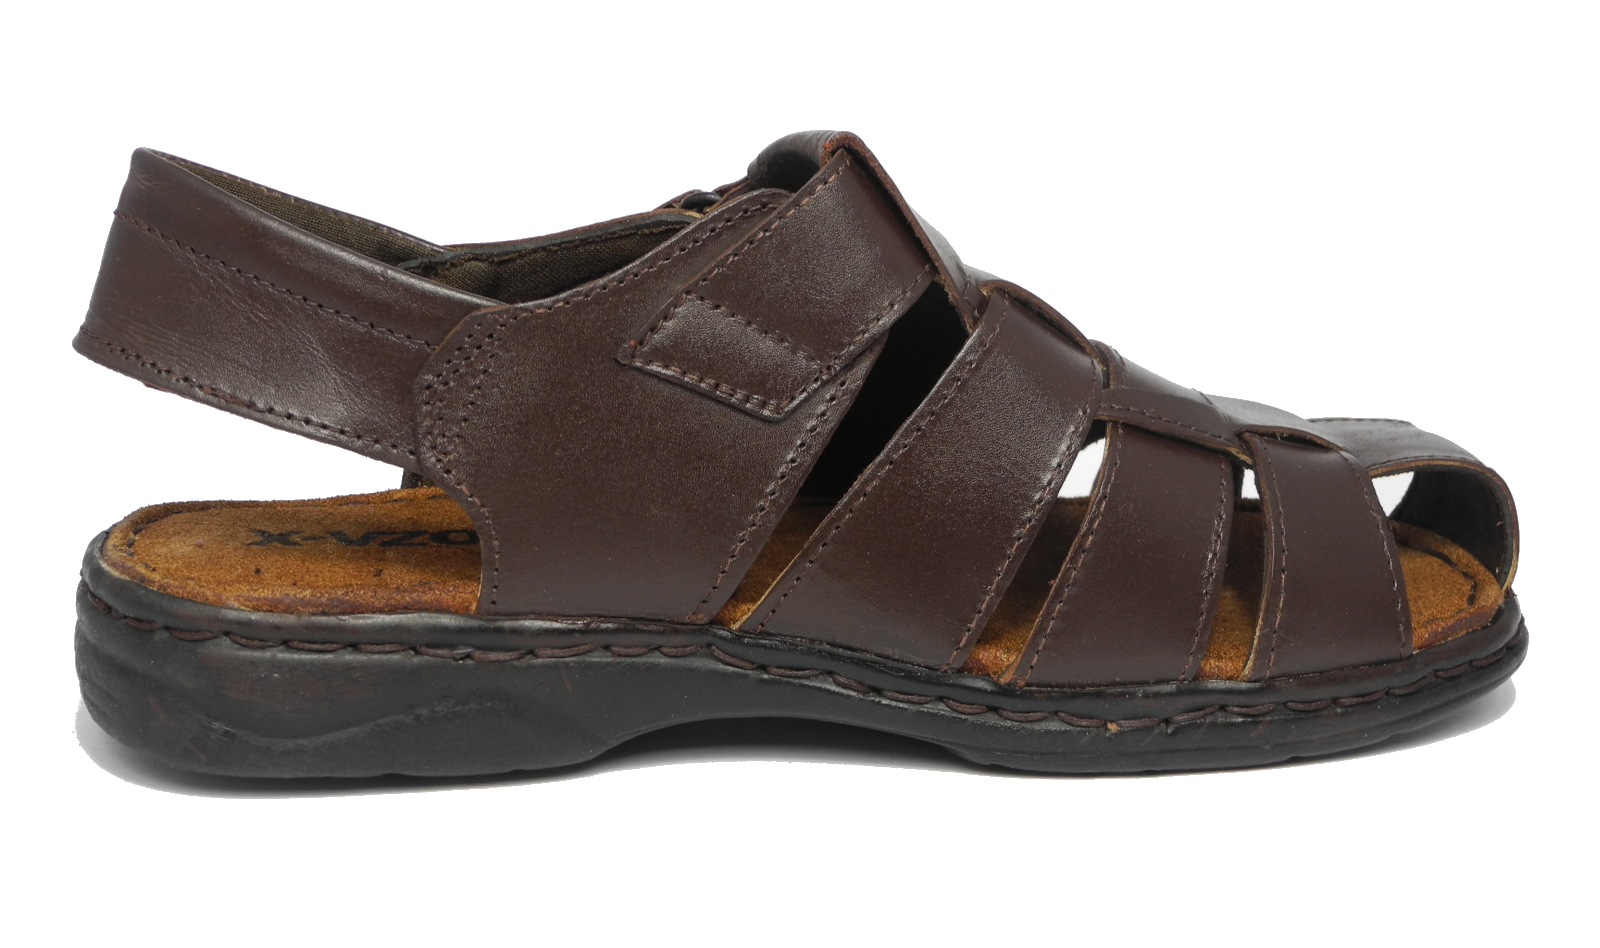 Black enclosed sandals - Mens Leather Closed Toe Velcro Sandals Summer Hiking Shoes Brown Black Size 6 11